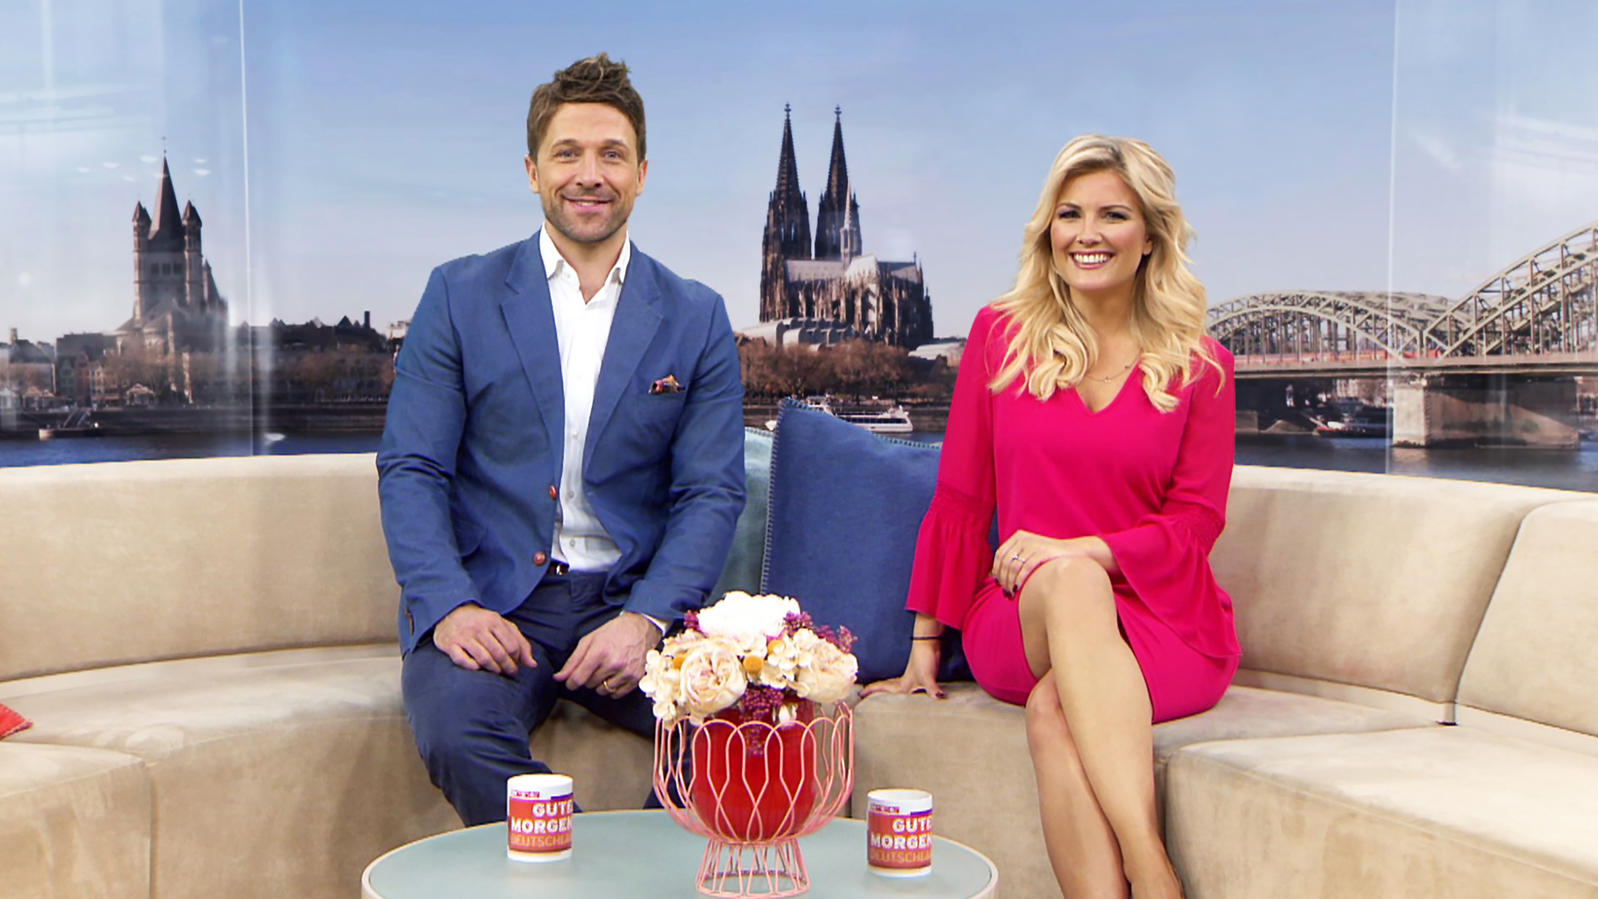 florian ambrosius verst rkt das rtl moderatorenteam von 39 guten morgen deutschland 39. Black Bedroom Furniture Sets. Home Design Ideas